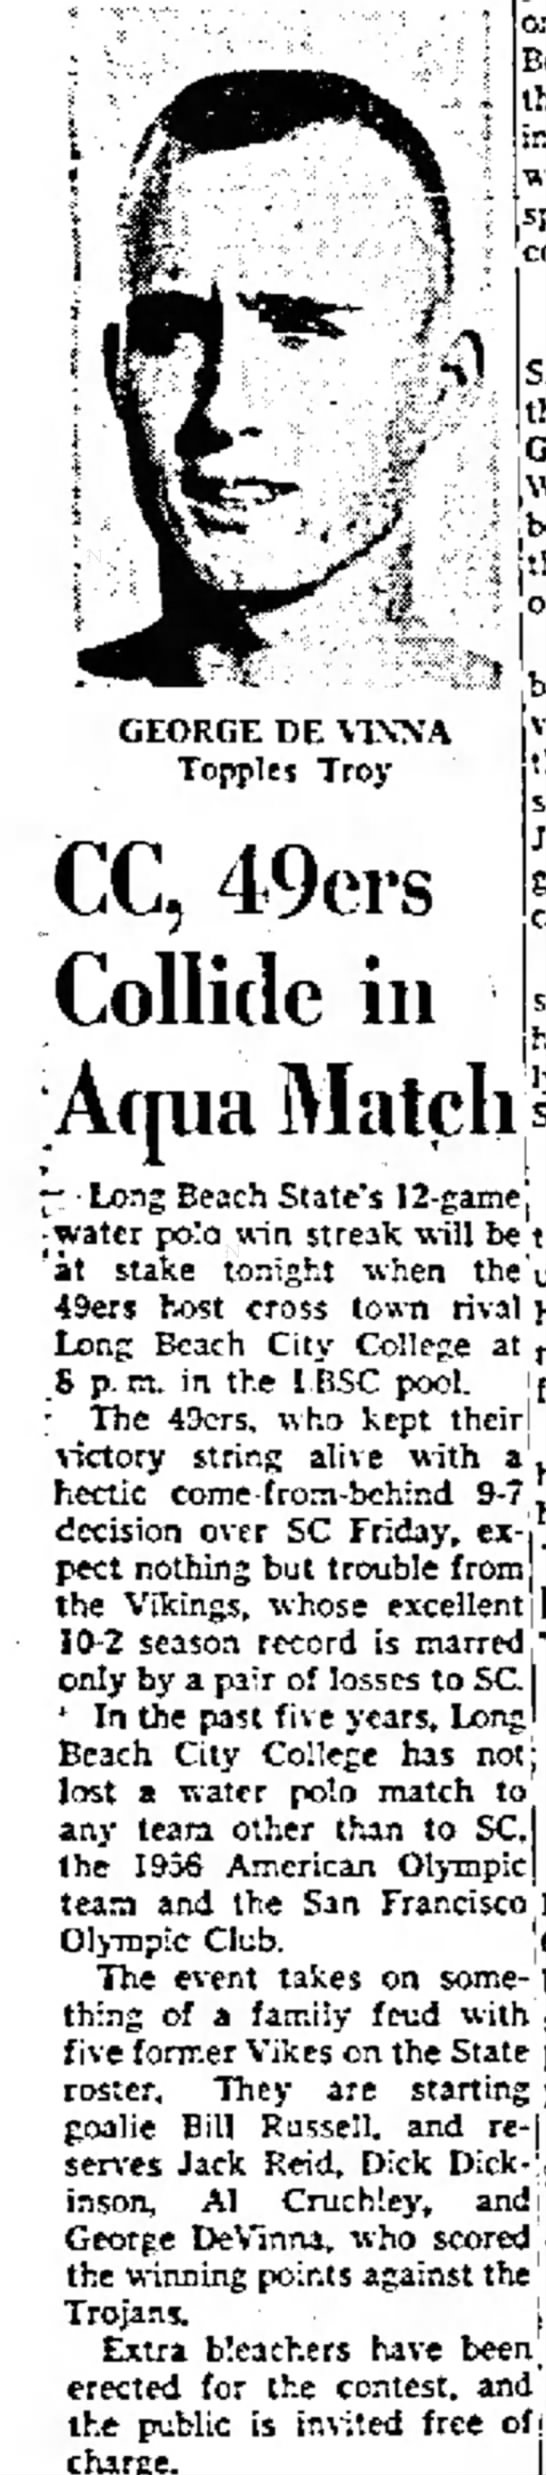 George Devinna water polo. The Independent (Long Beach, CA) 10 Nov. 1959 - GEORGE DE V1XNA Topples Troy CC, 49crs Collide...